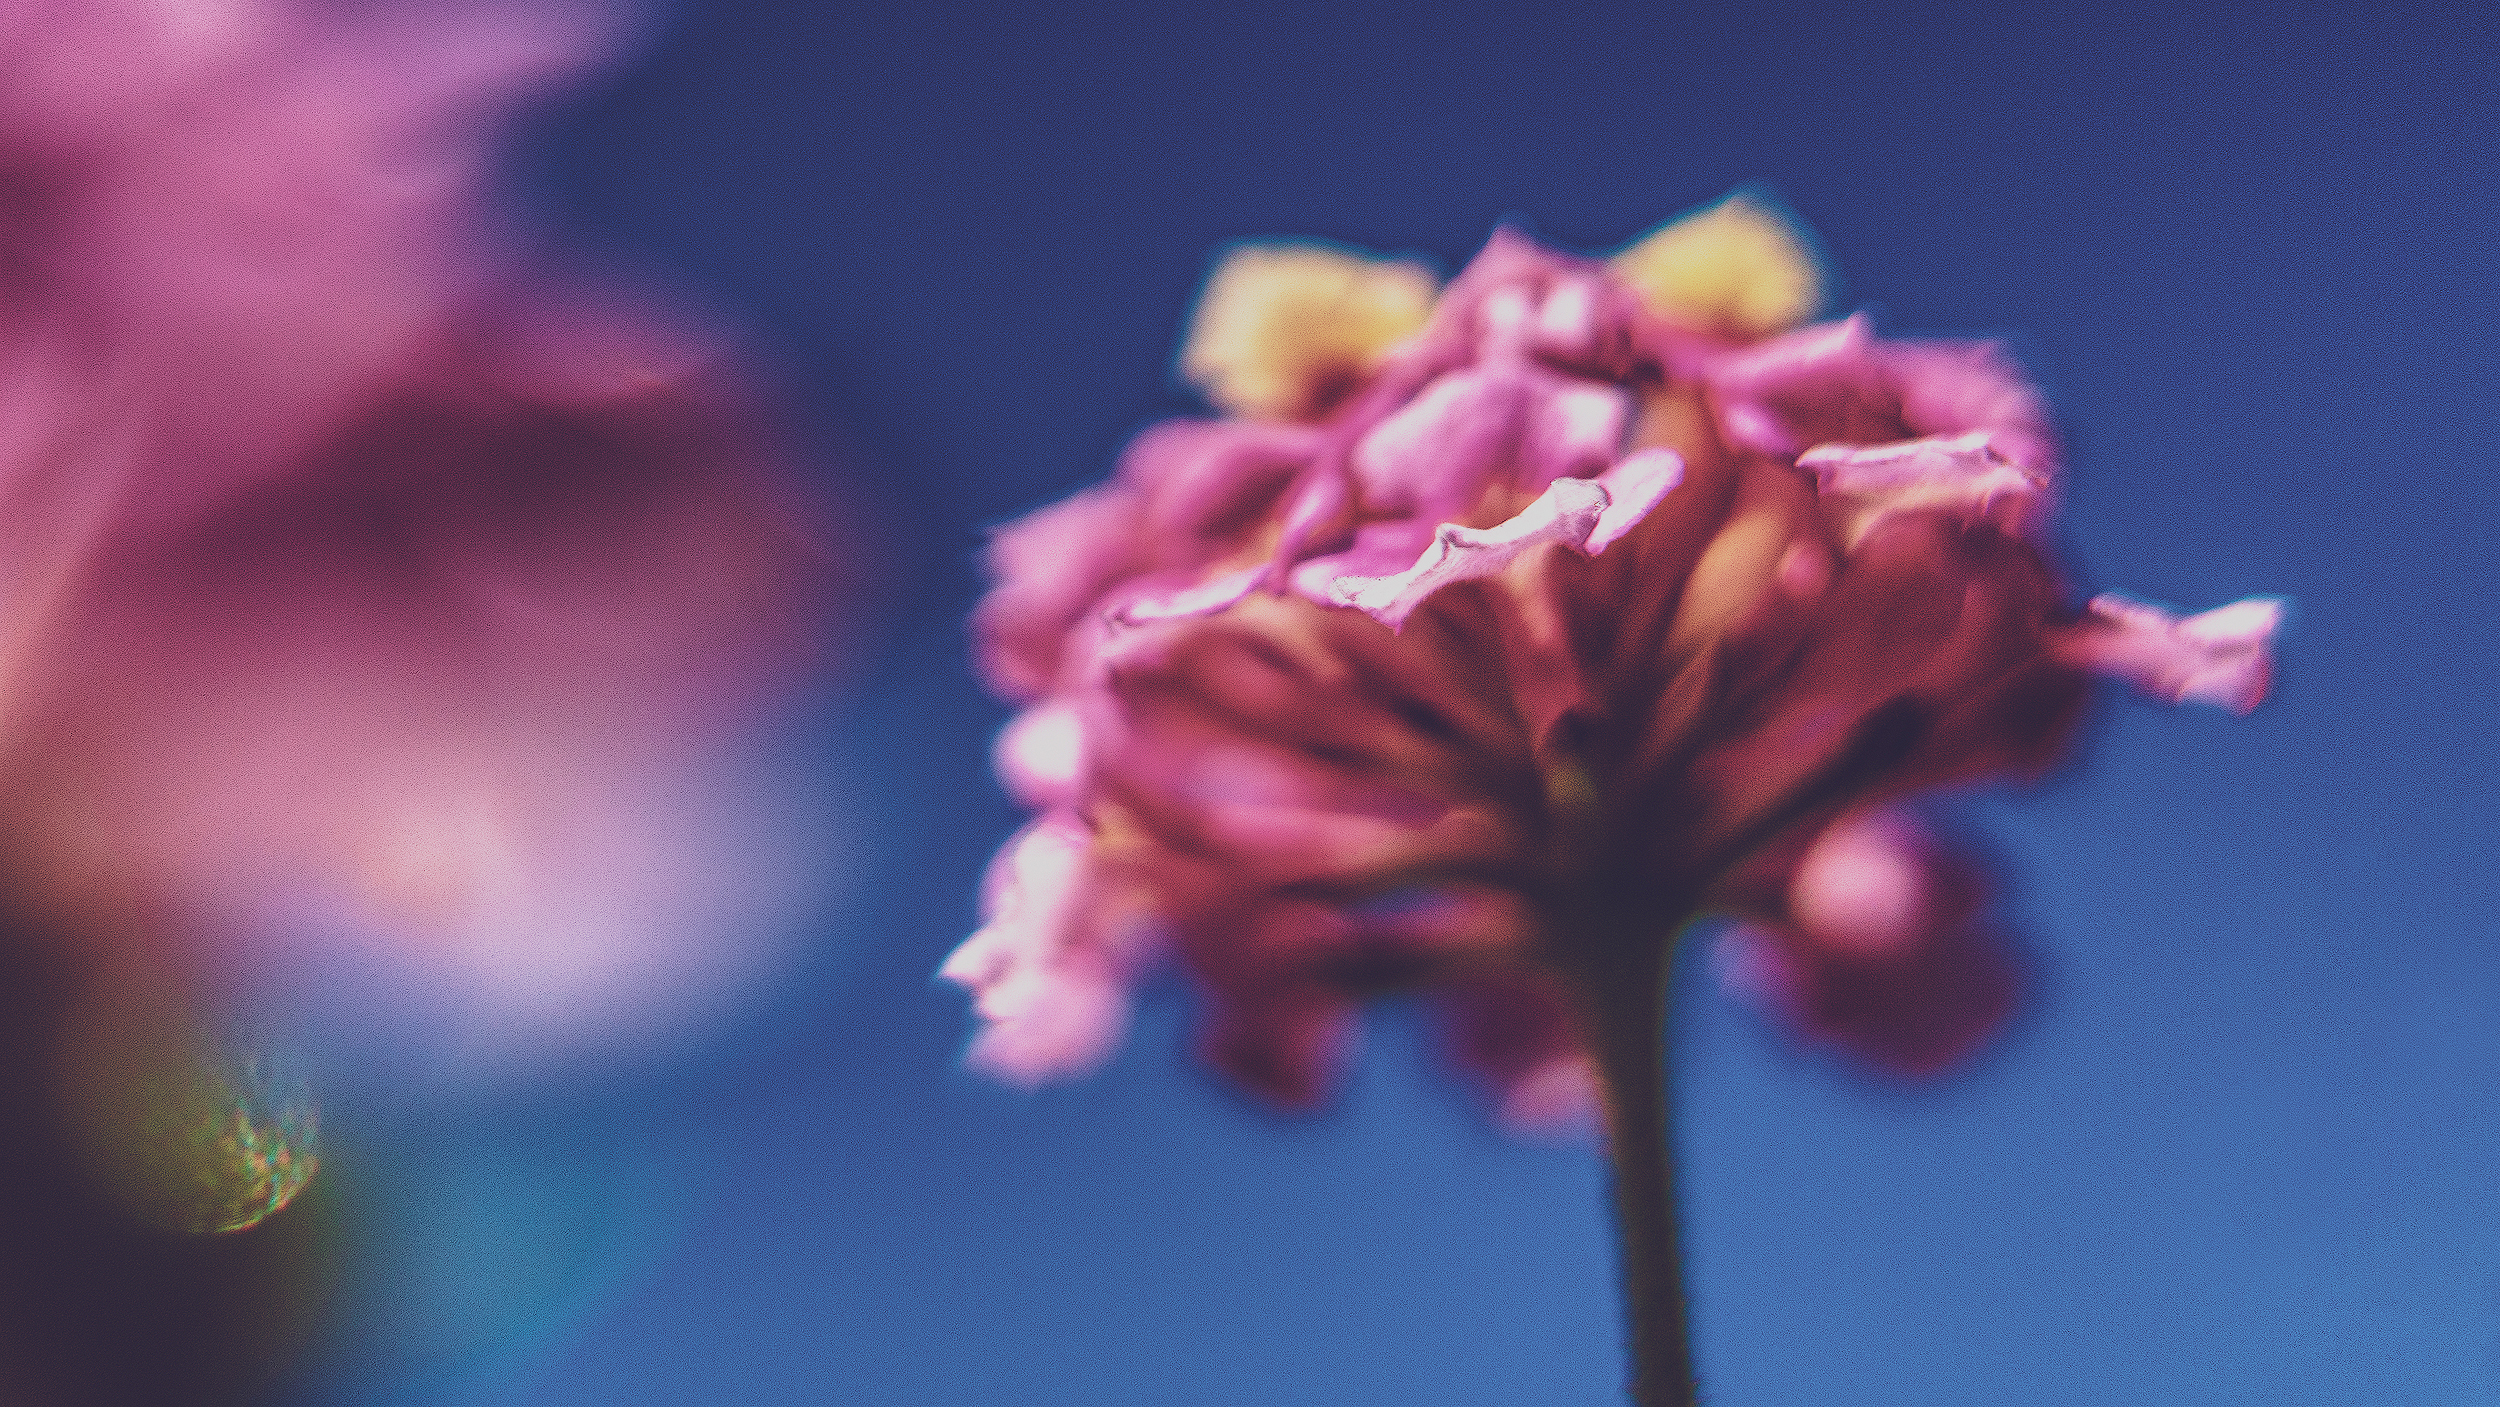 looking up at a flower - i get smaller